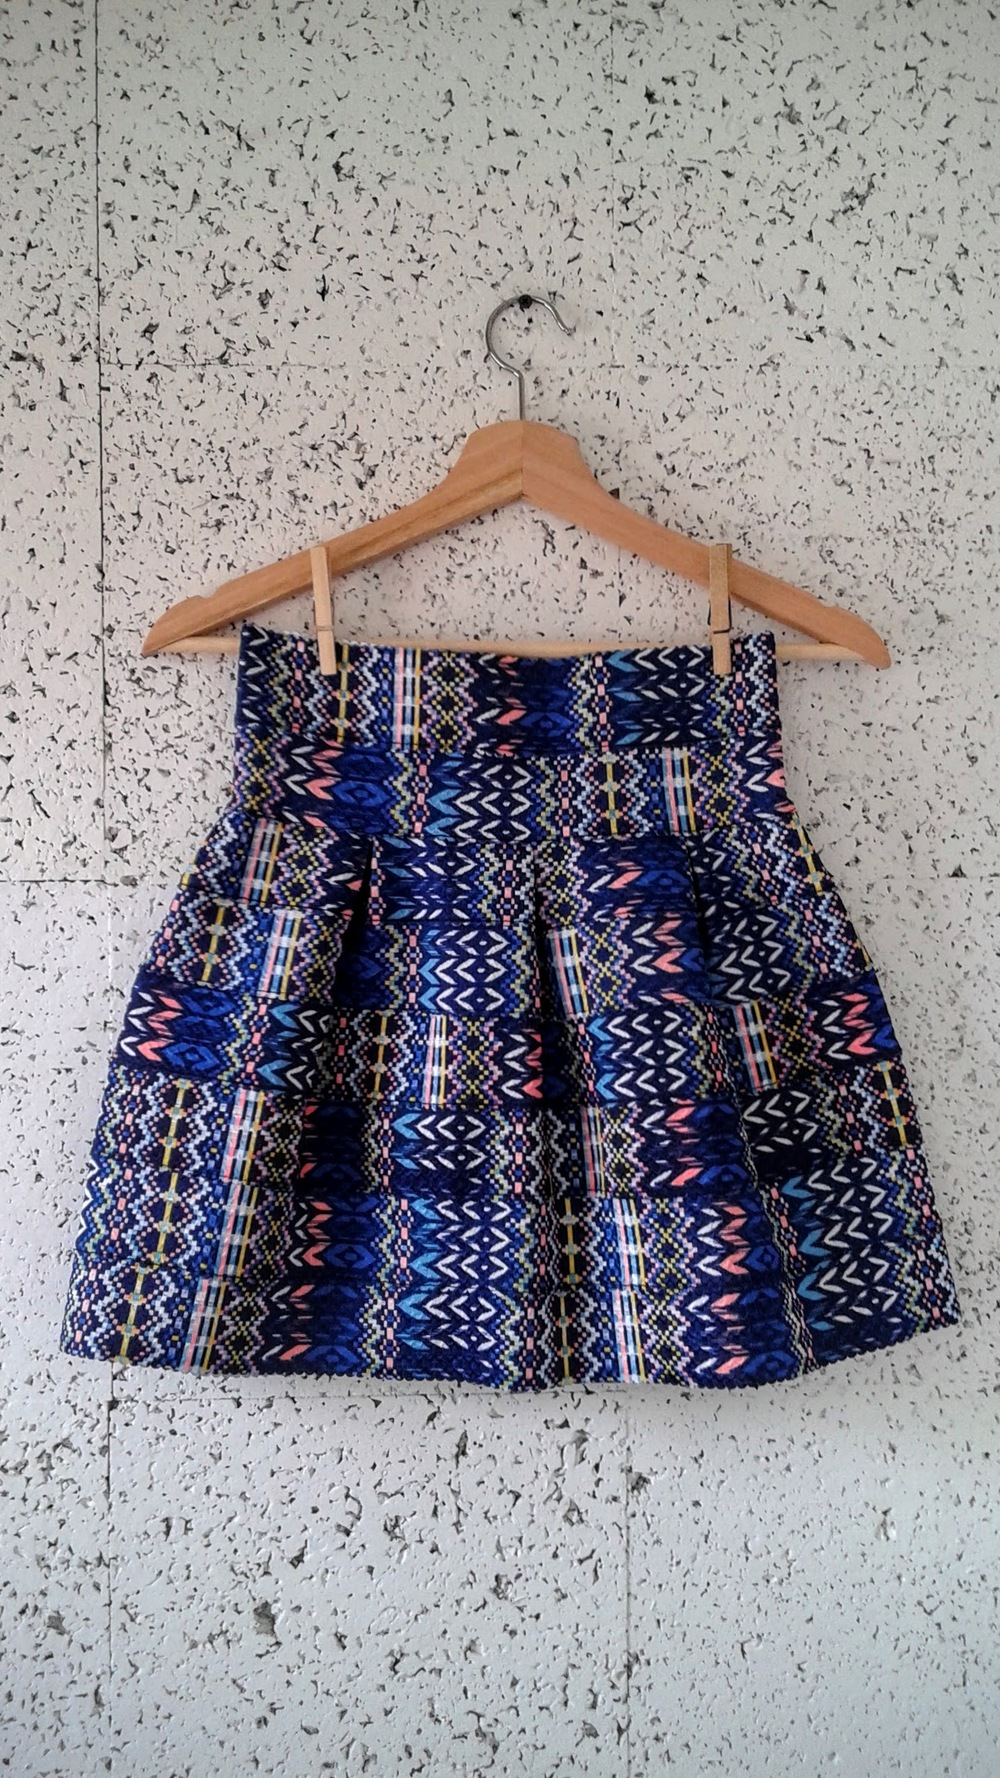 Hand-made skirt; Size S, $16